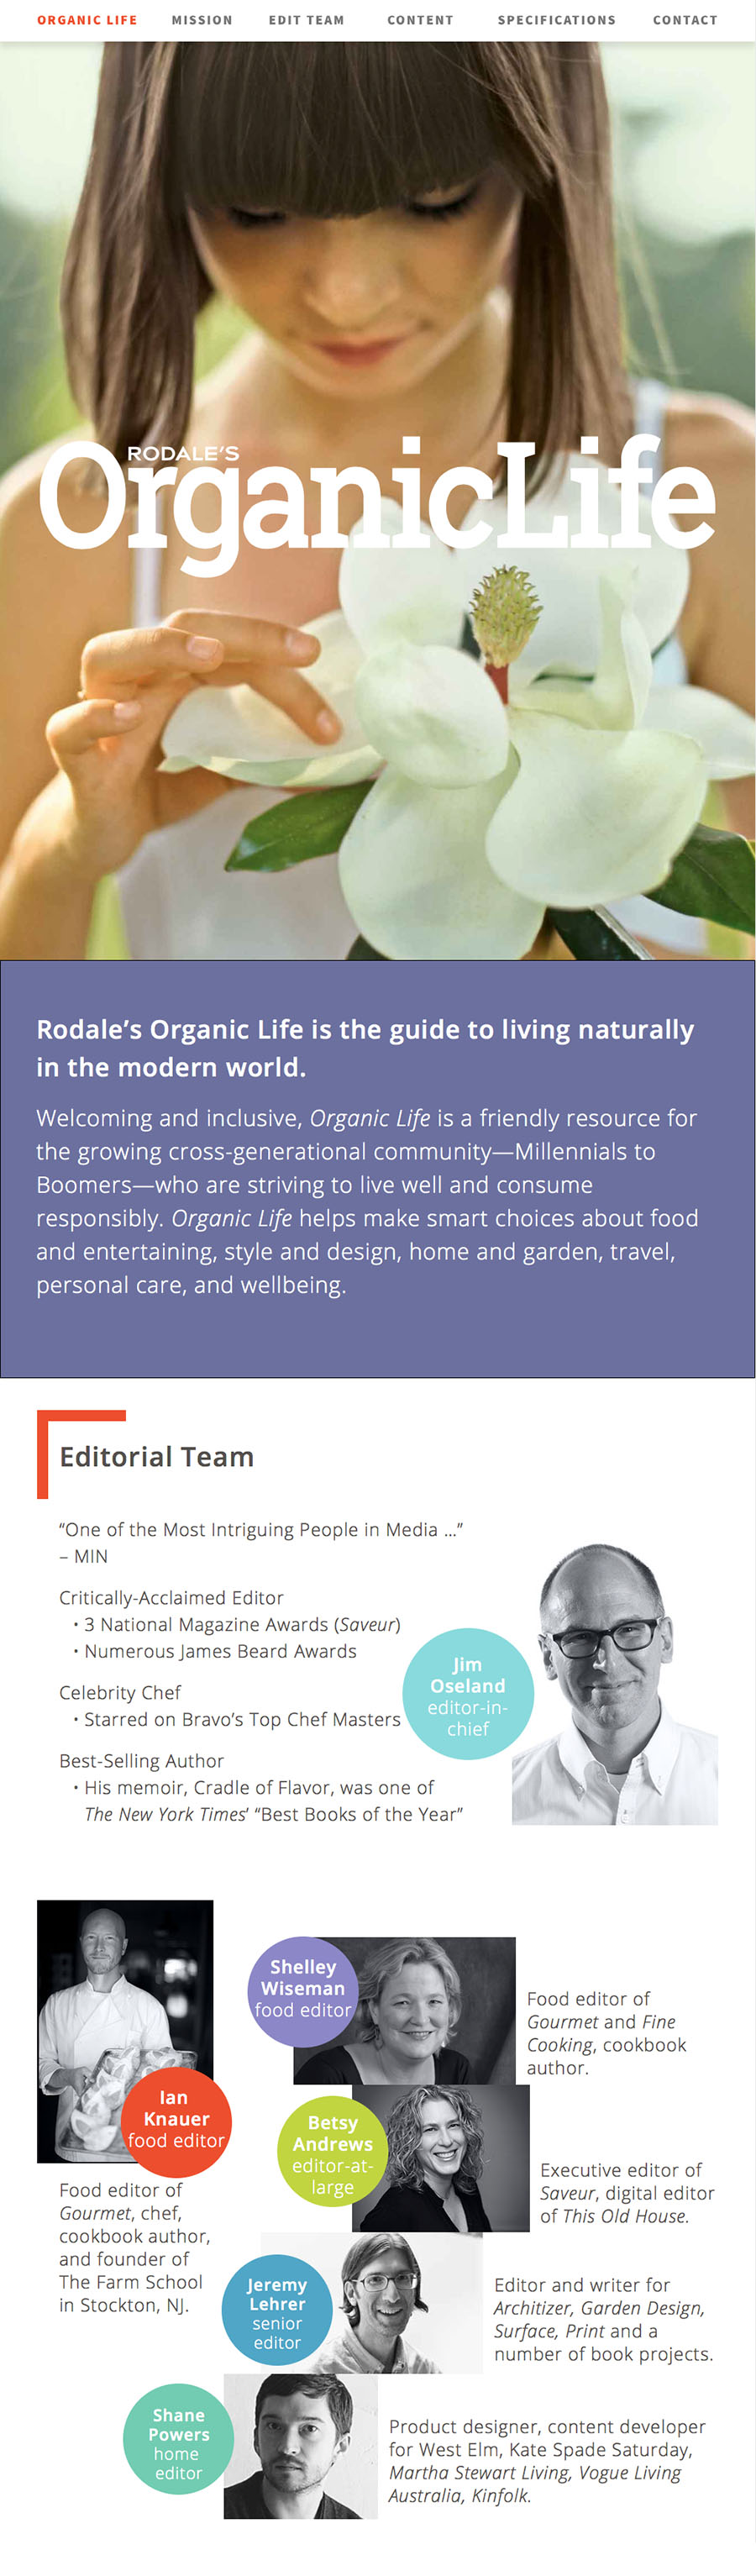 Online media kit, part of the magazine launch marketing collateral. Top half featuring hero image; mission statement; editorial team.